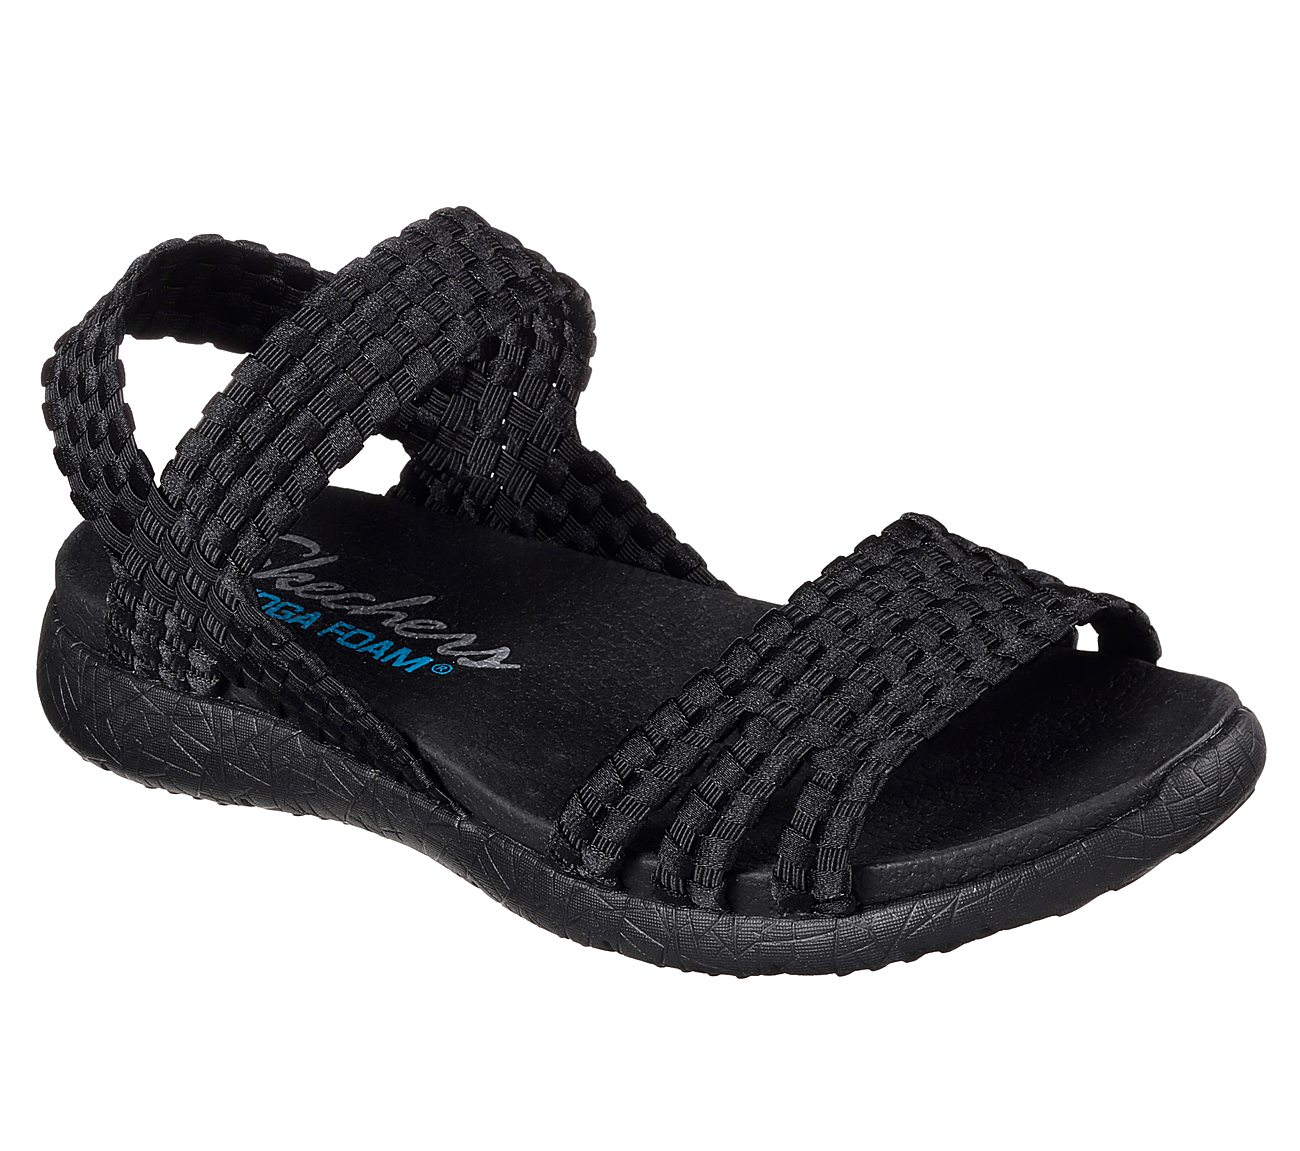 Buy Skechers Microburst Looks Good Cali Shoes Only 45 00